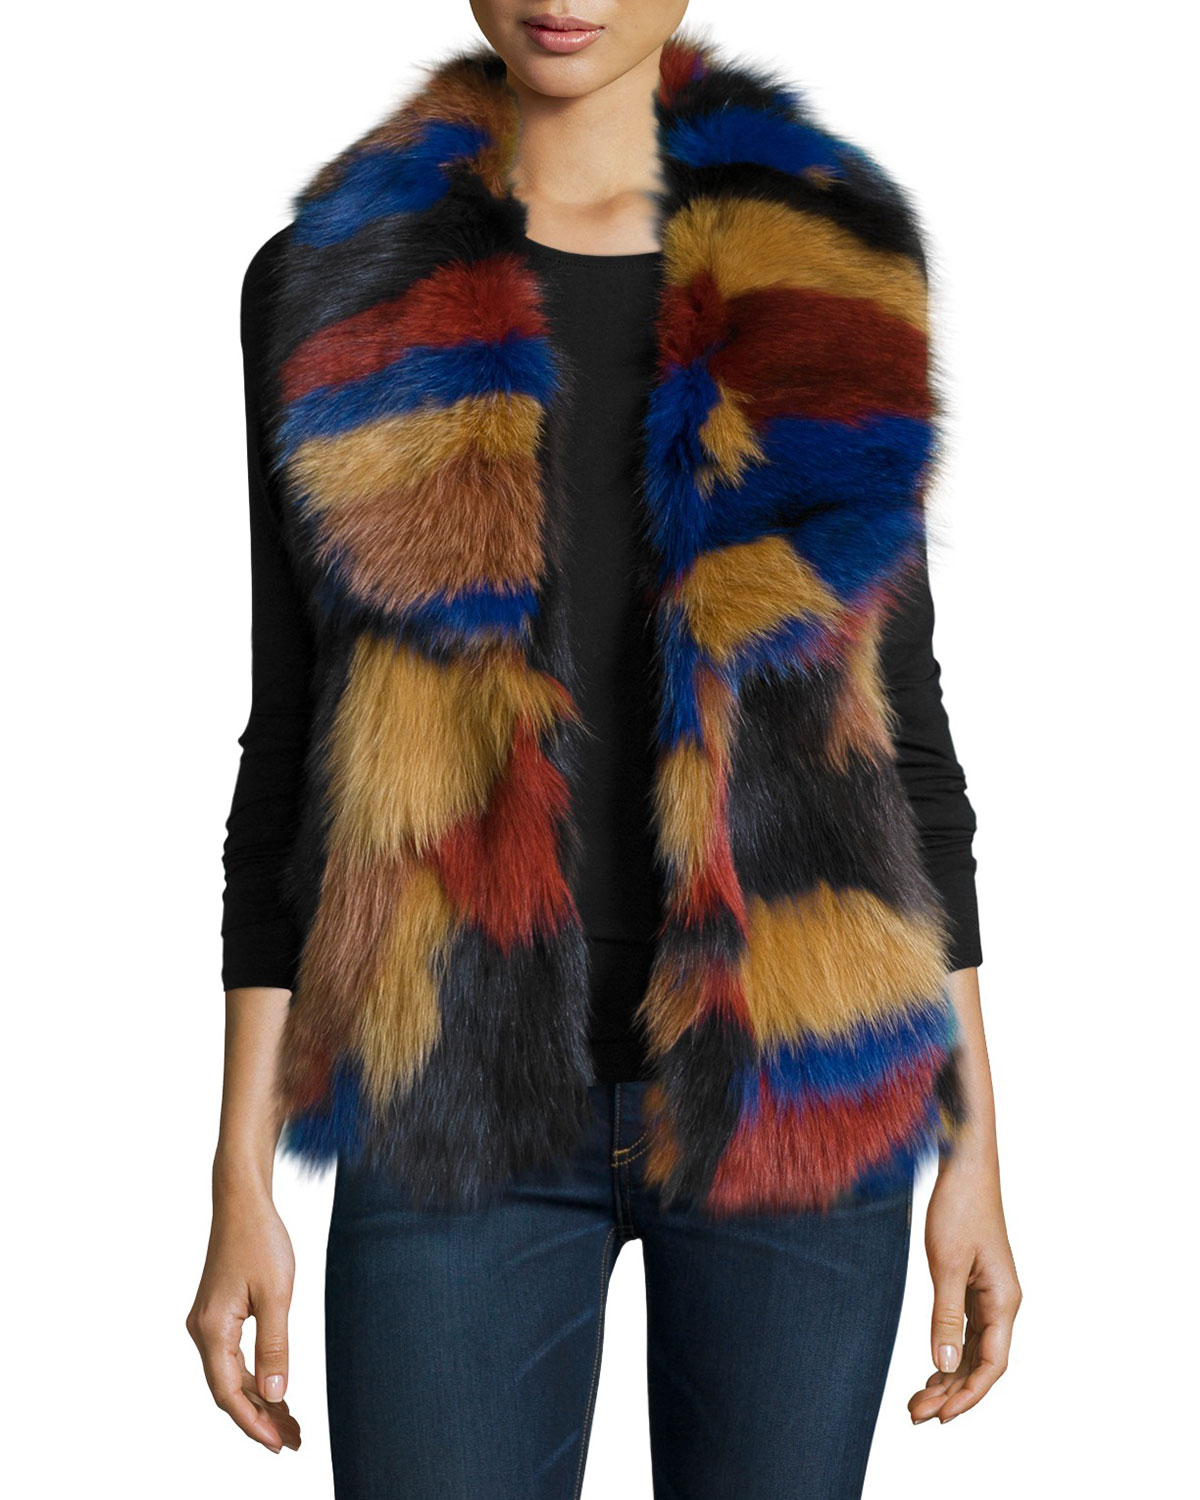 Fox-Fur Patchwork Vest, Multi Colors, Size: SMALL, MULTI - Cusp by Neiman Marcus